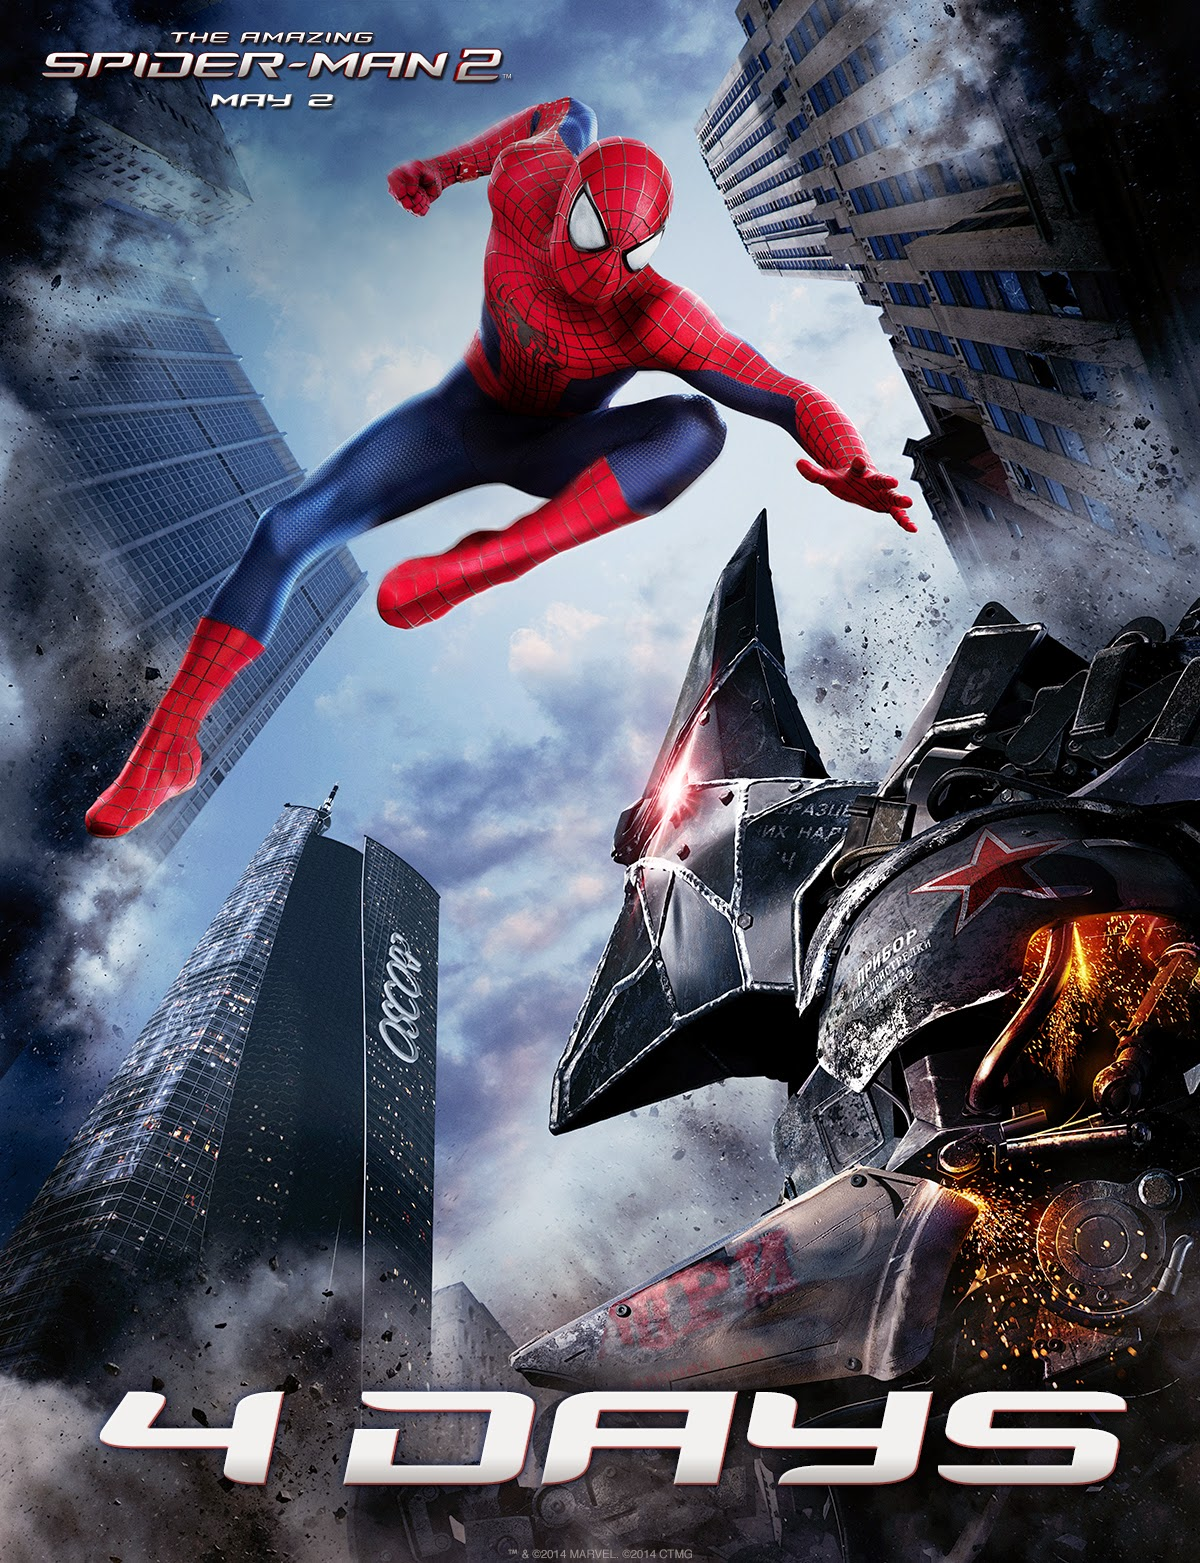 Spiderman movie rhino - photo#10